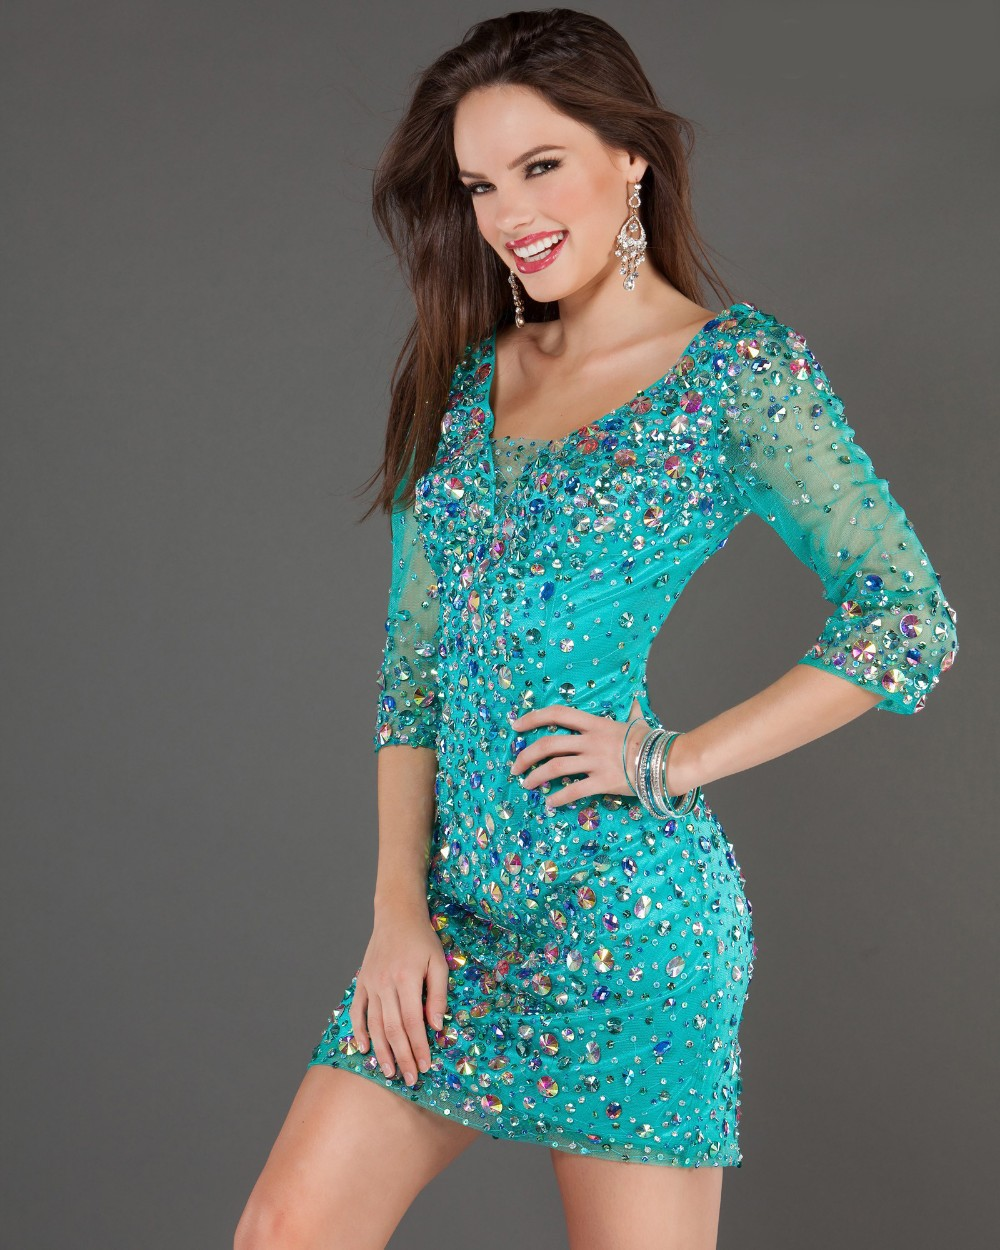 Turquoise Sparkly Short Homecoming Dresses Tight Waisted | Dress images